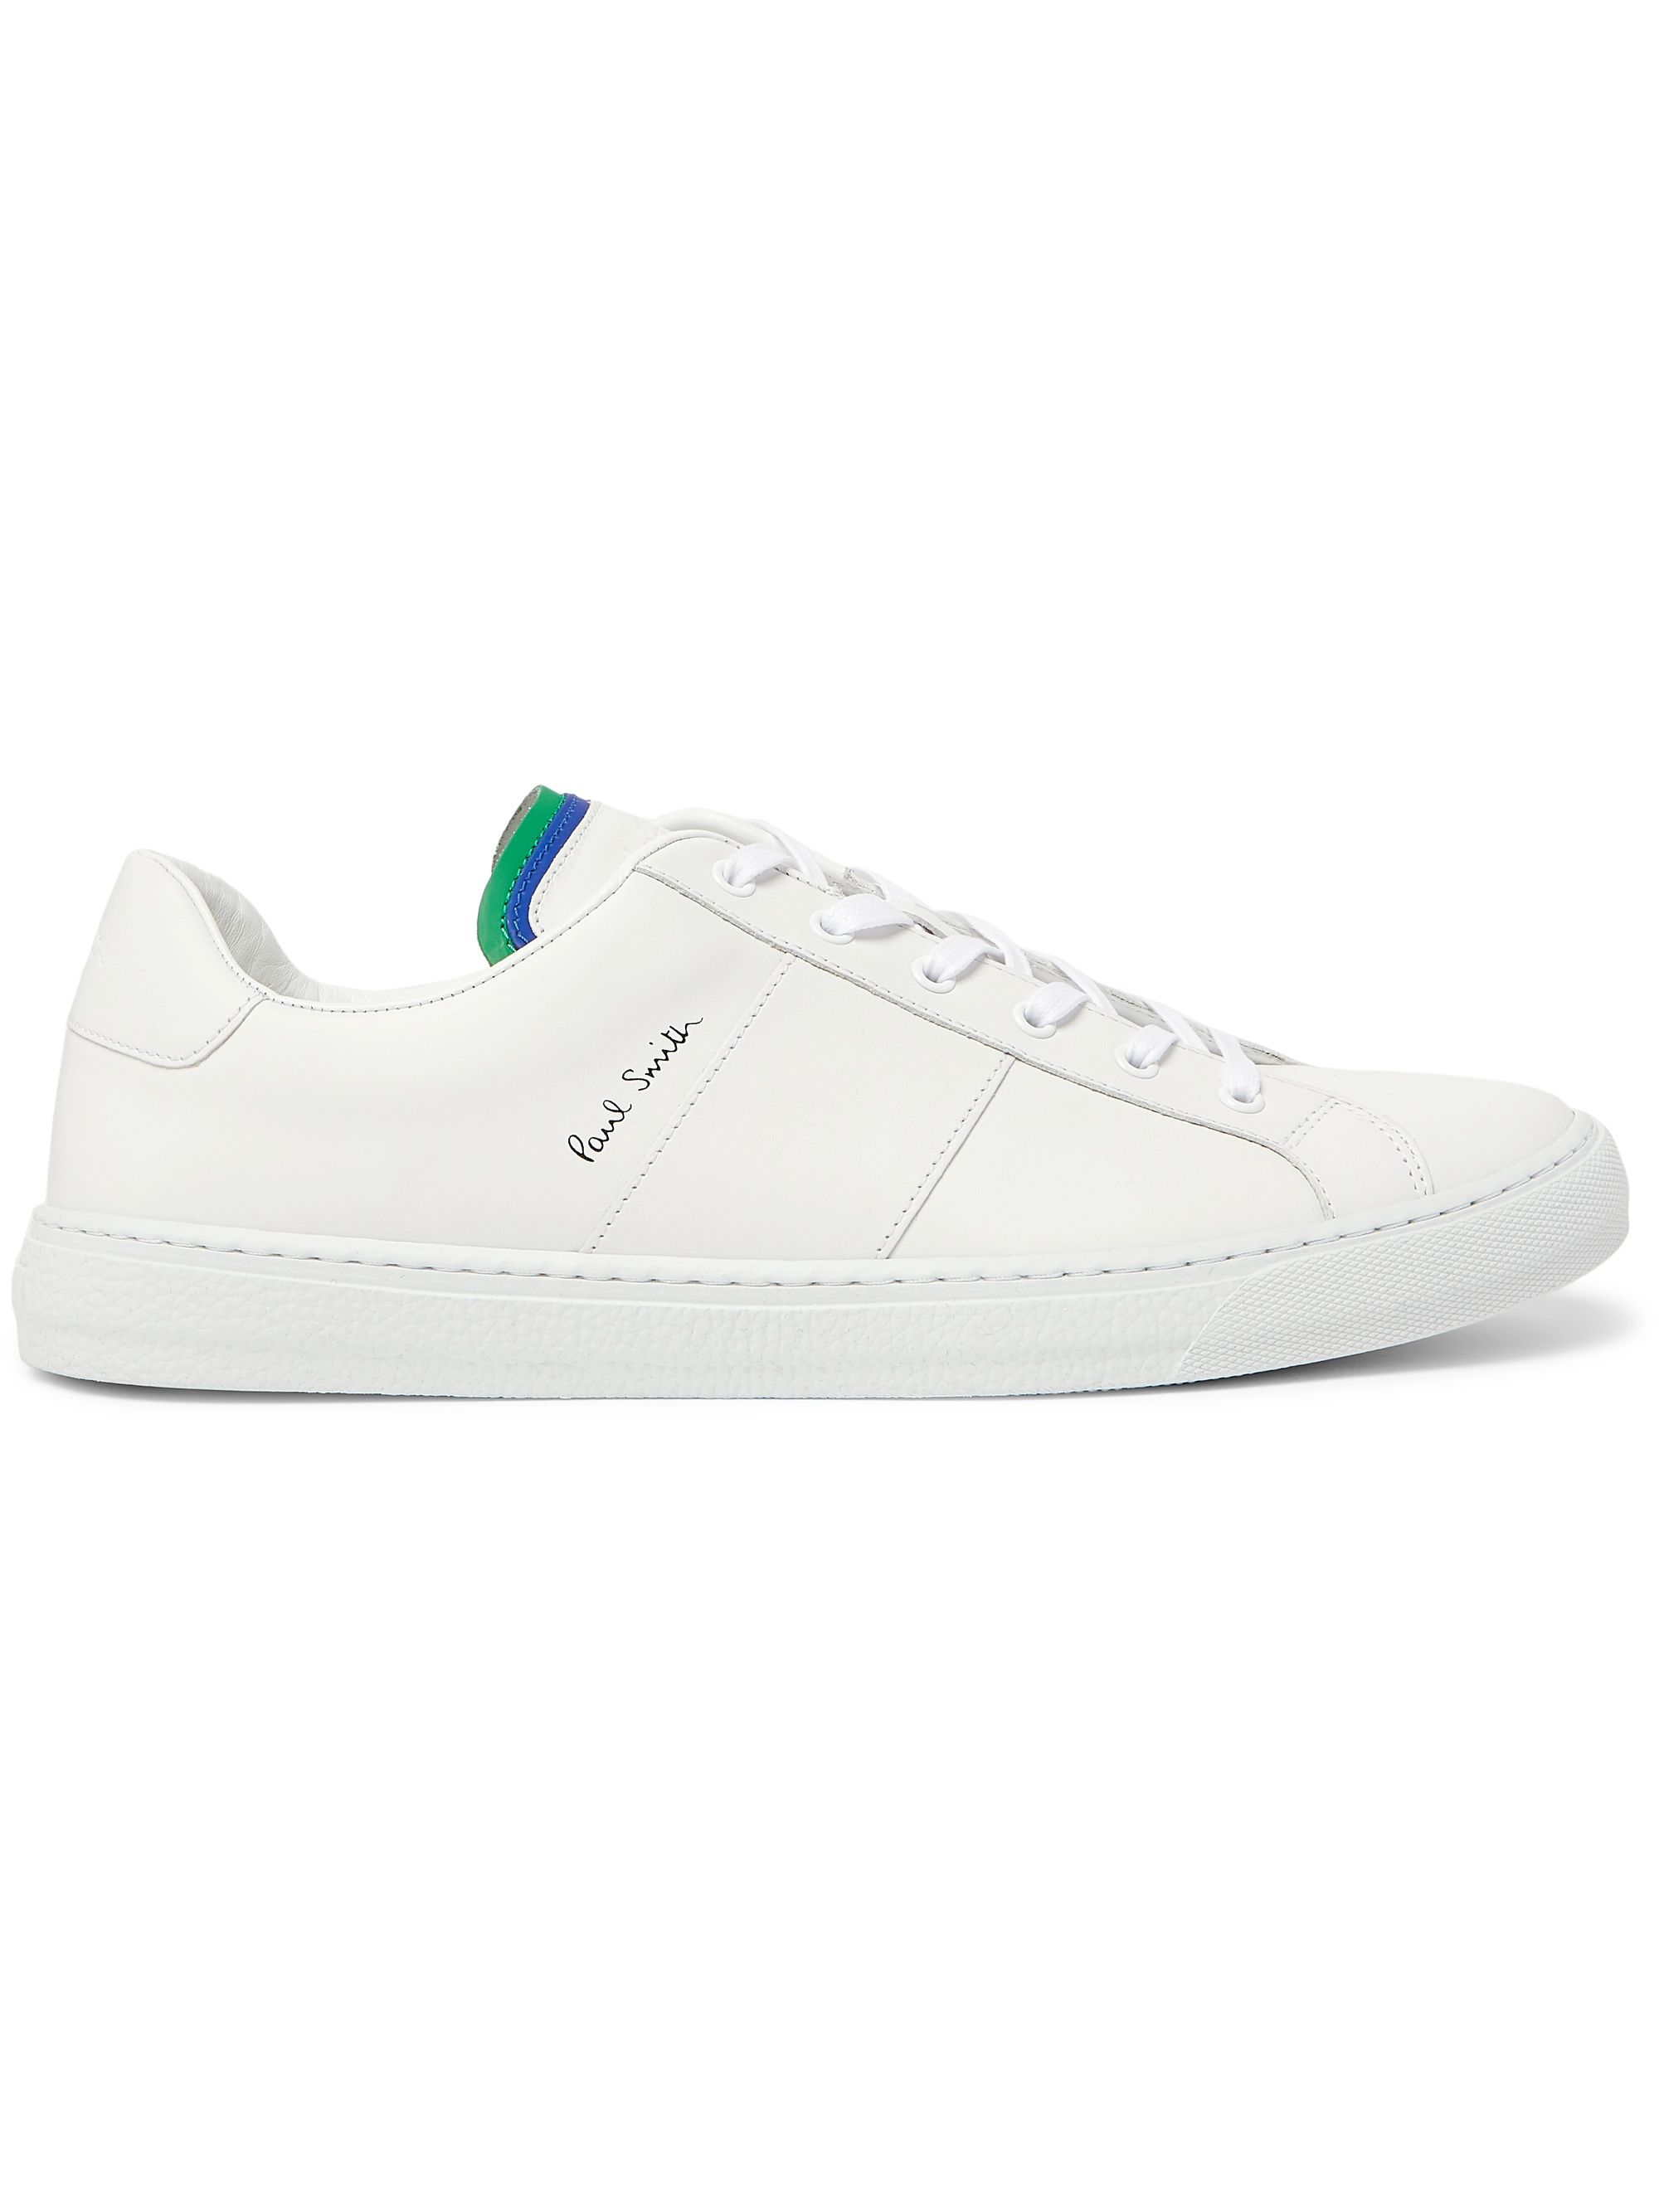 Paul Smith Hansen Leather Sneakers